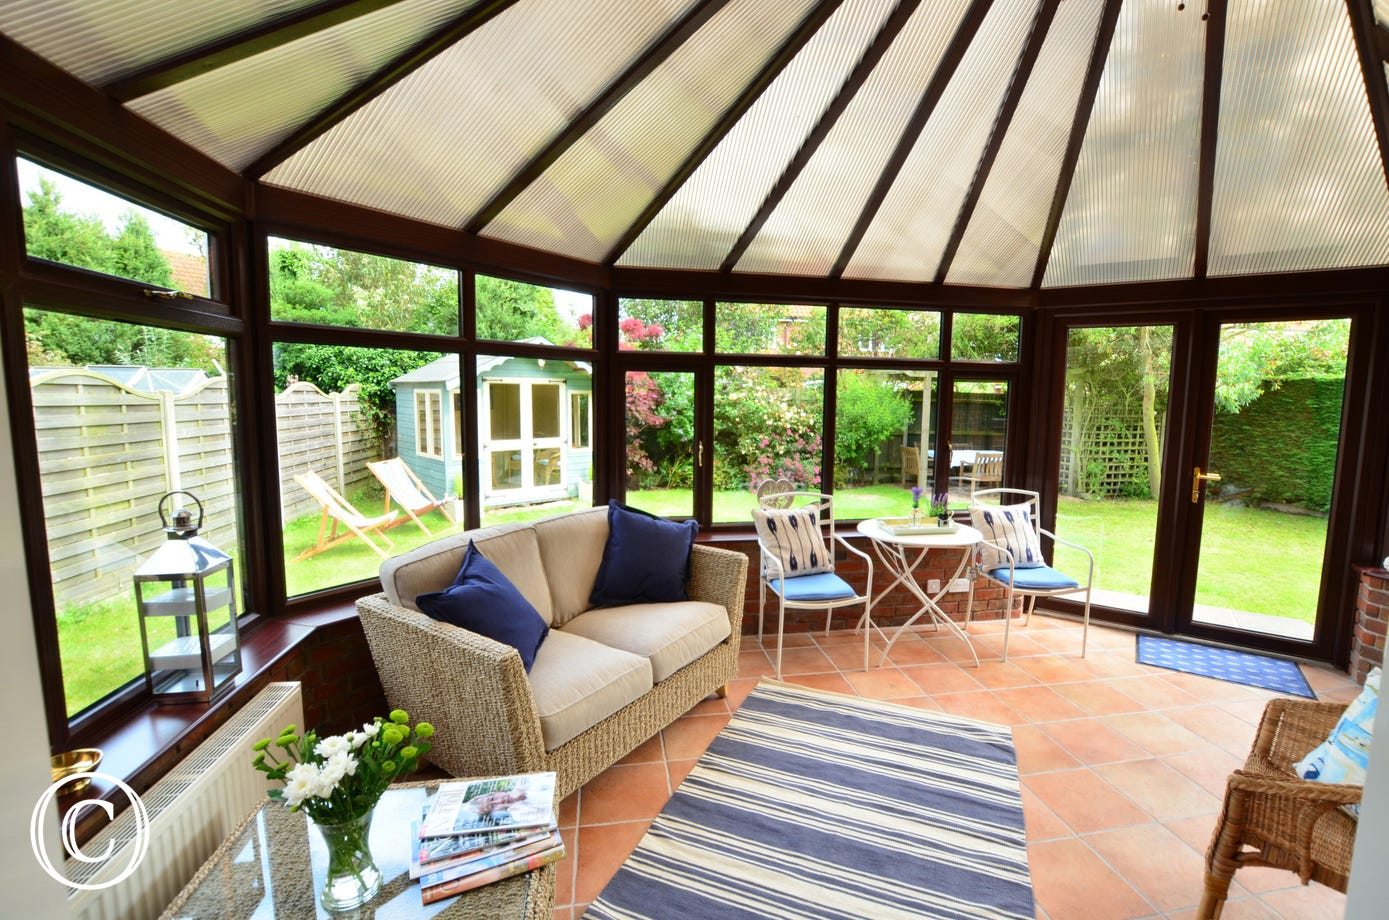 Large tiled conservatory with comfortable seating and lovely views of the garden